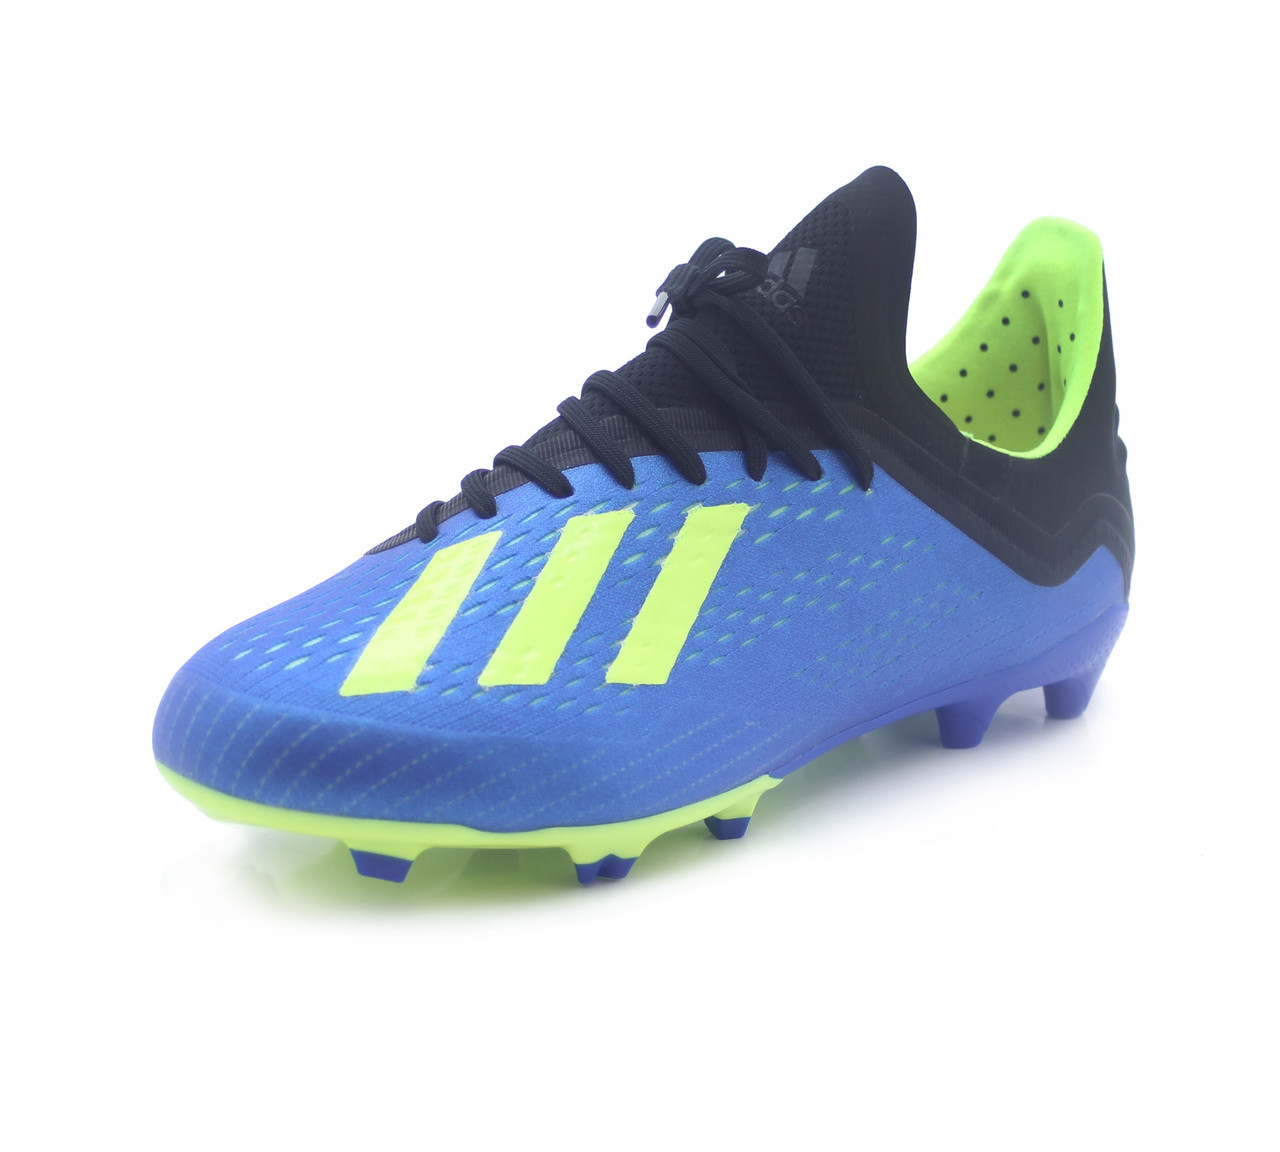 huge selection of a314d 767bf Adidas X 18.1 FG J - Football Blue Solar Yellow Core Black (62518) - ohp  soccer